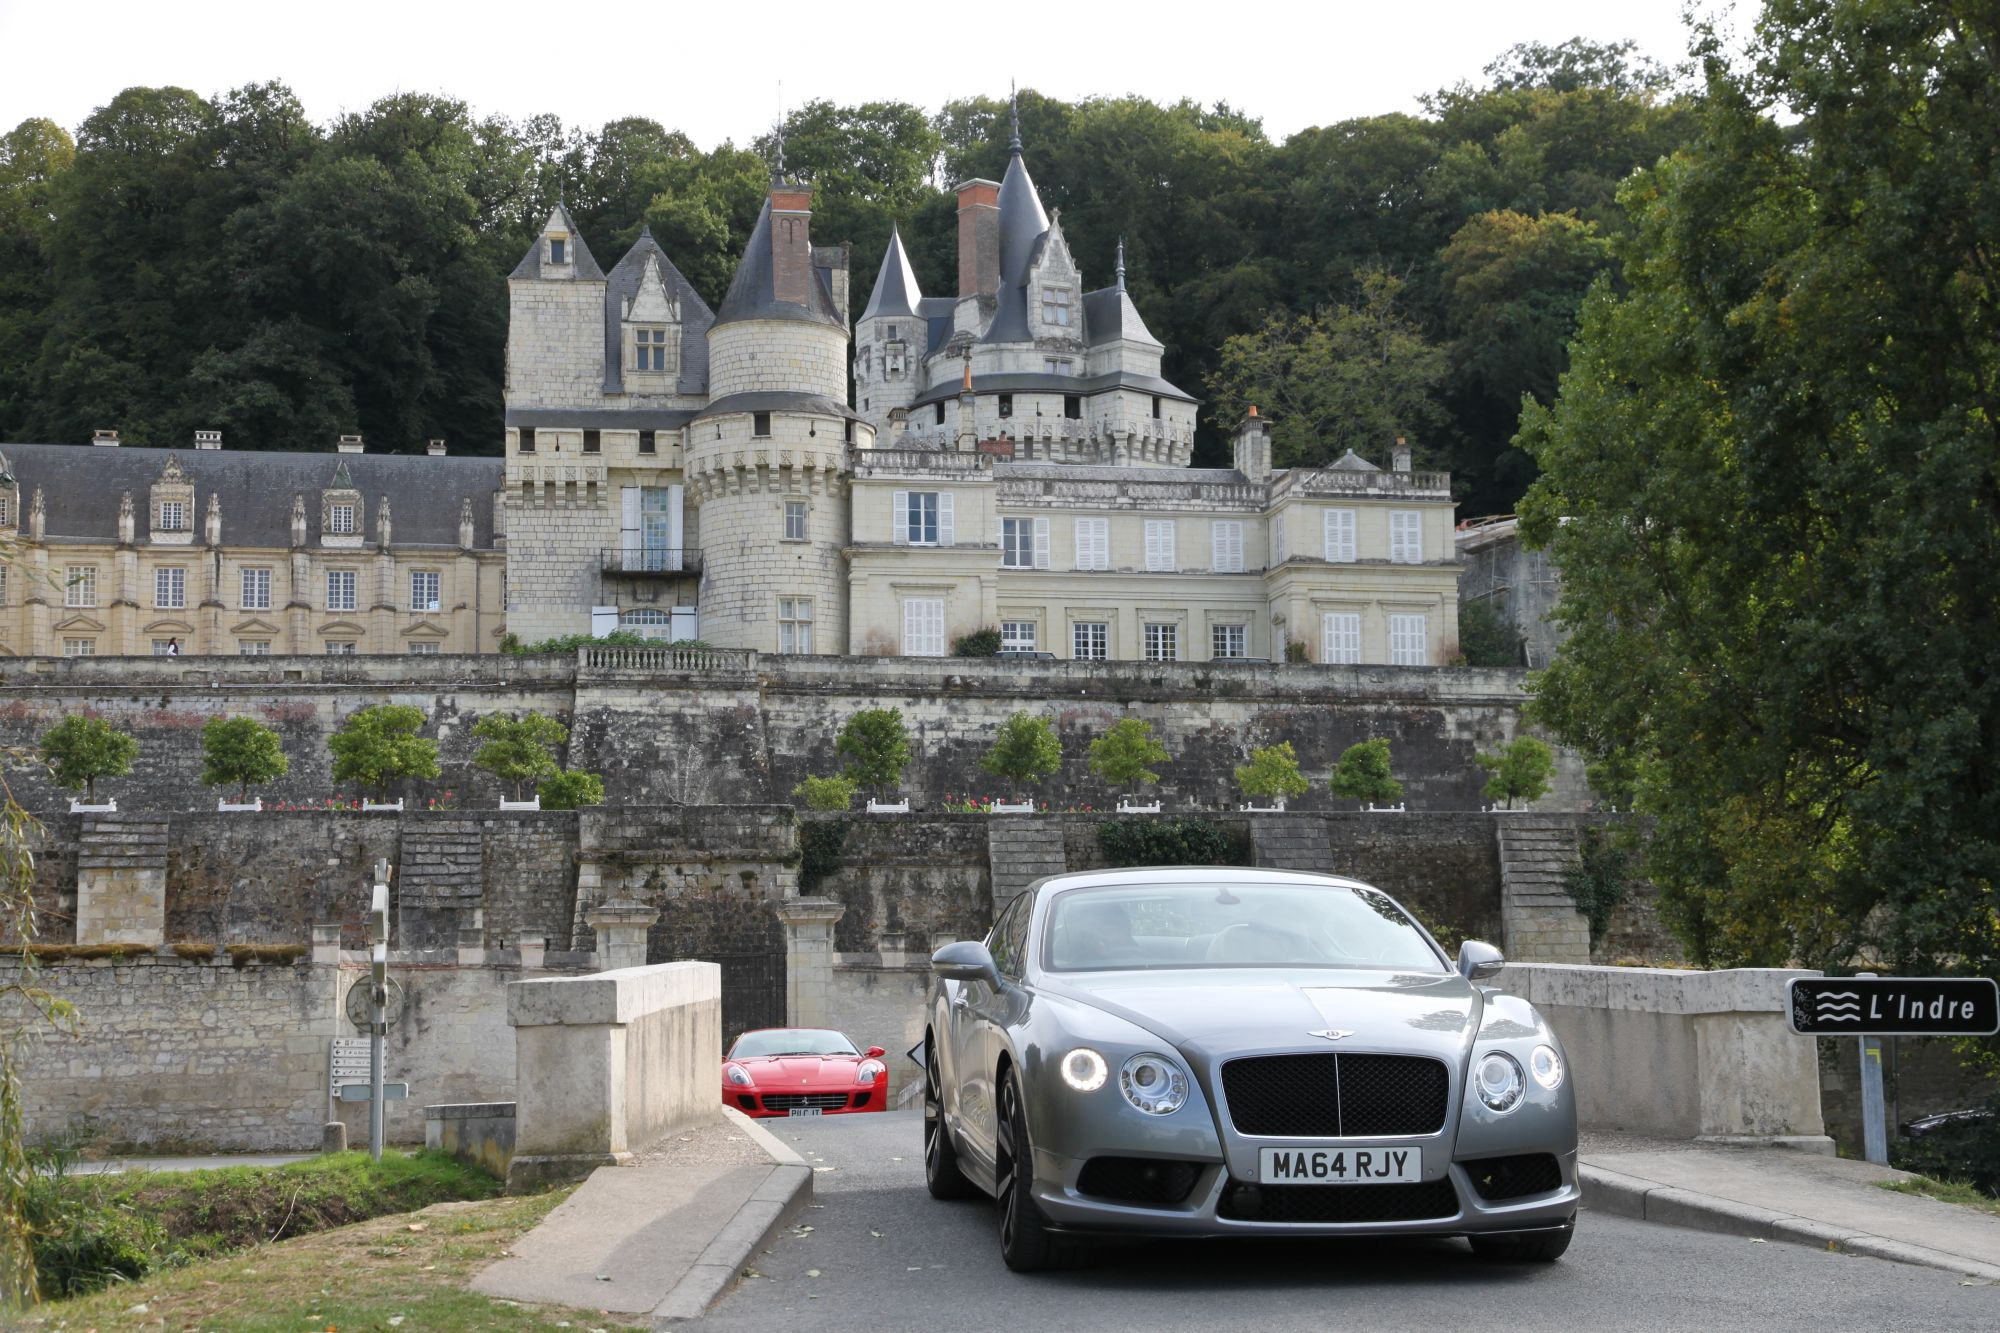 Hotel De France And Le Mans Experience 2019